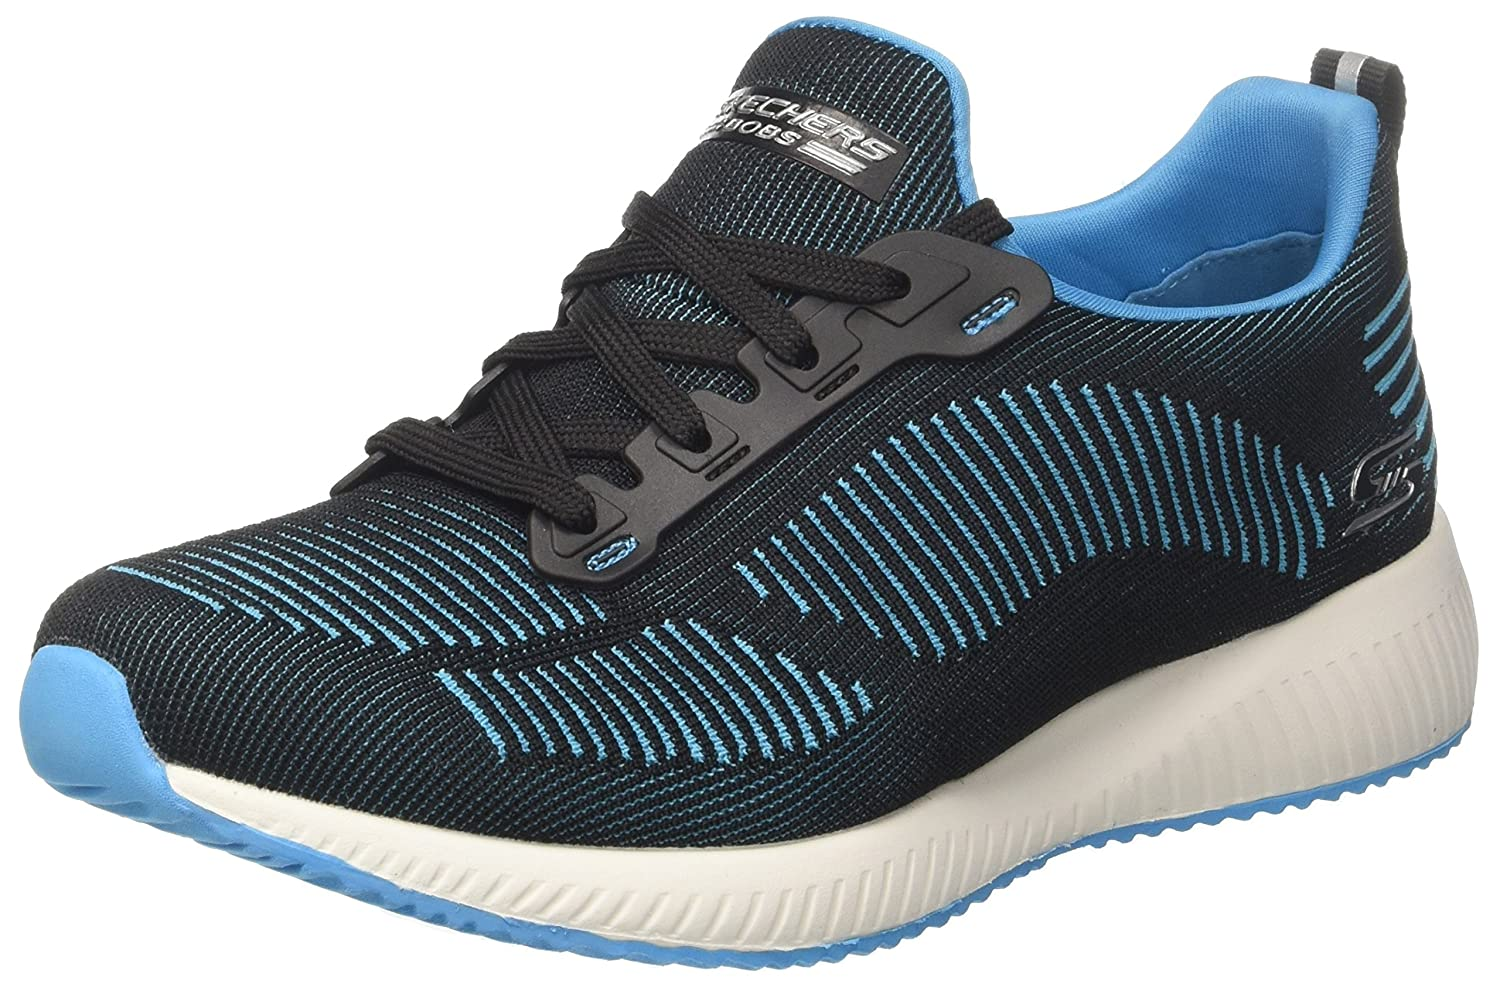 Skechers BOBS from Women's Bobs Squad-Twinning Fashion Sneaker B076BV8DS5 6 B(M) US|Black/Turquoise